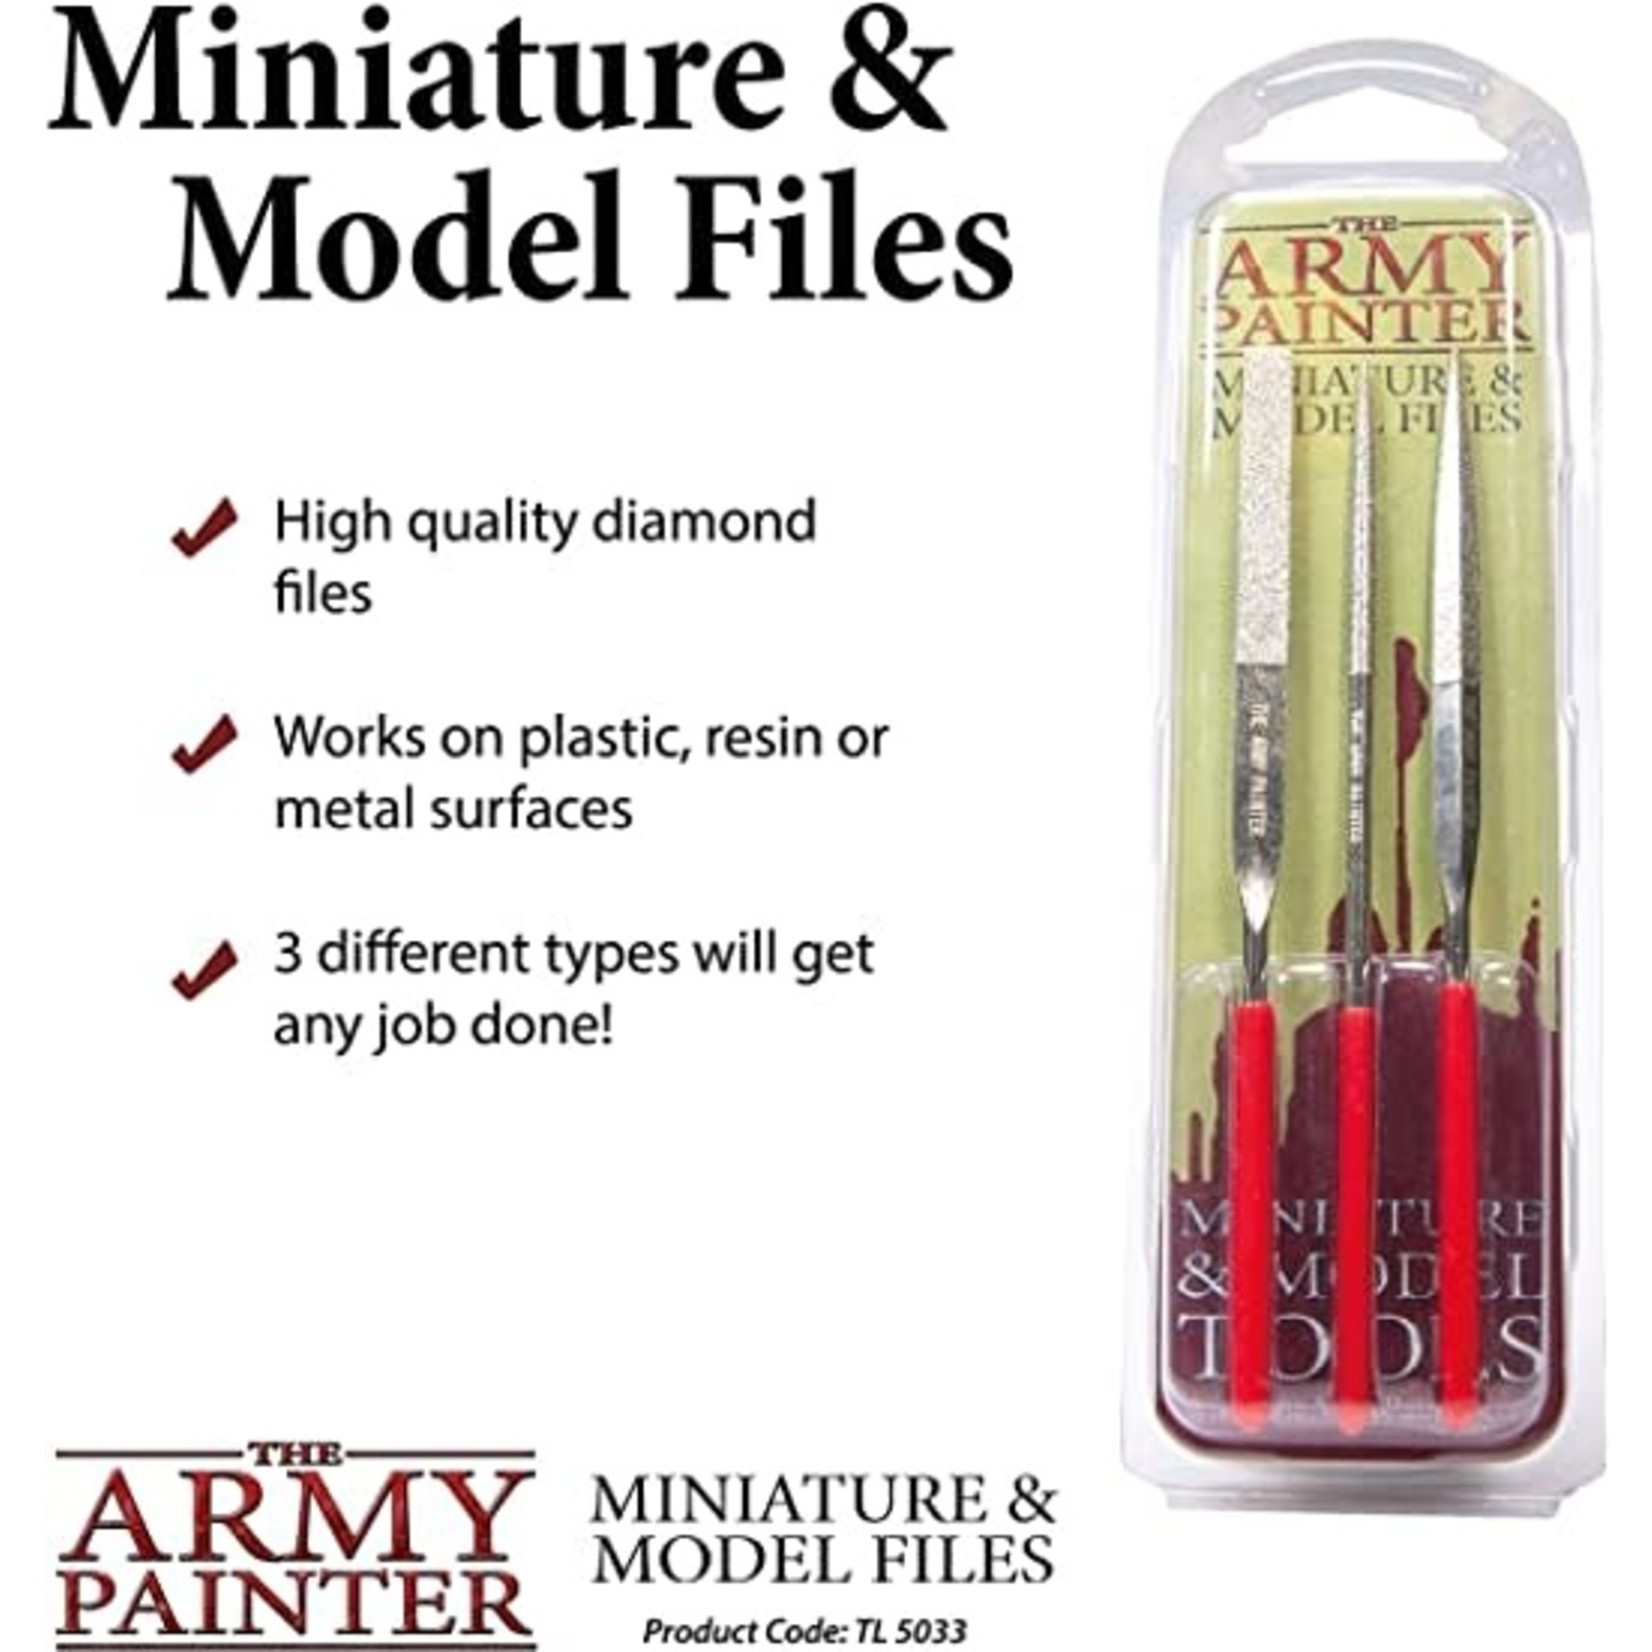 THE ARMY PAINTER MINIATURE AND MODEL FILES